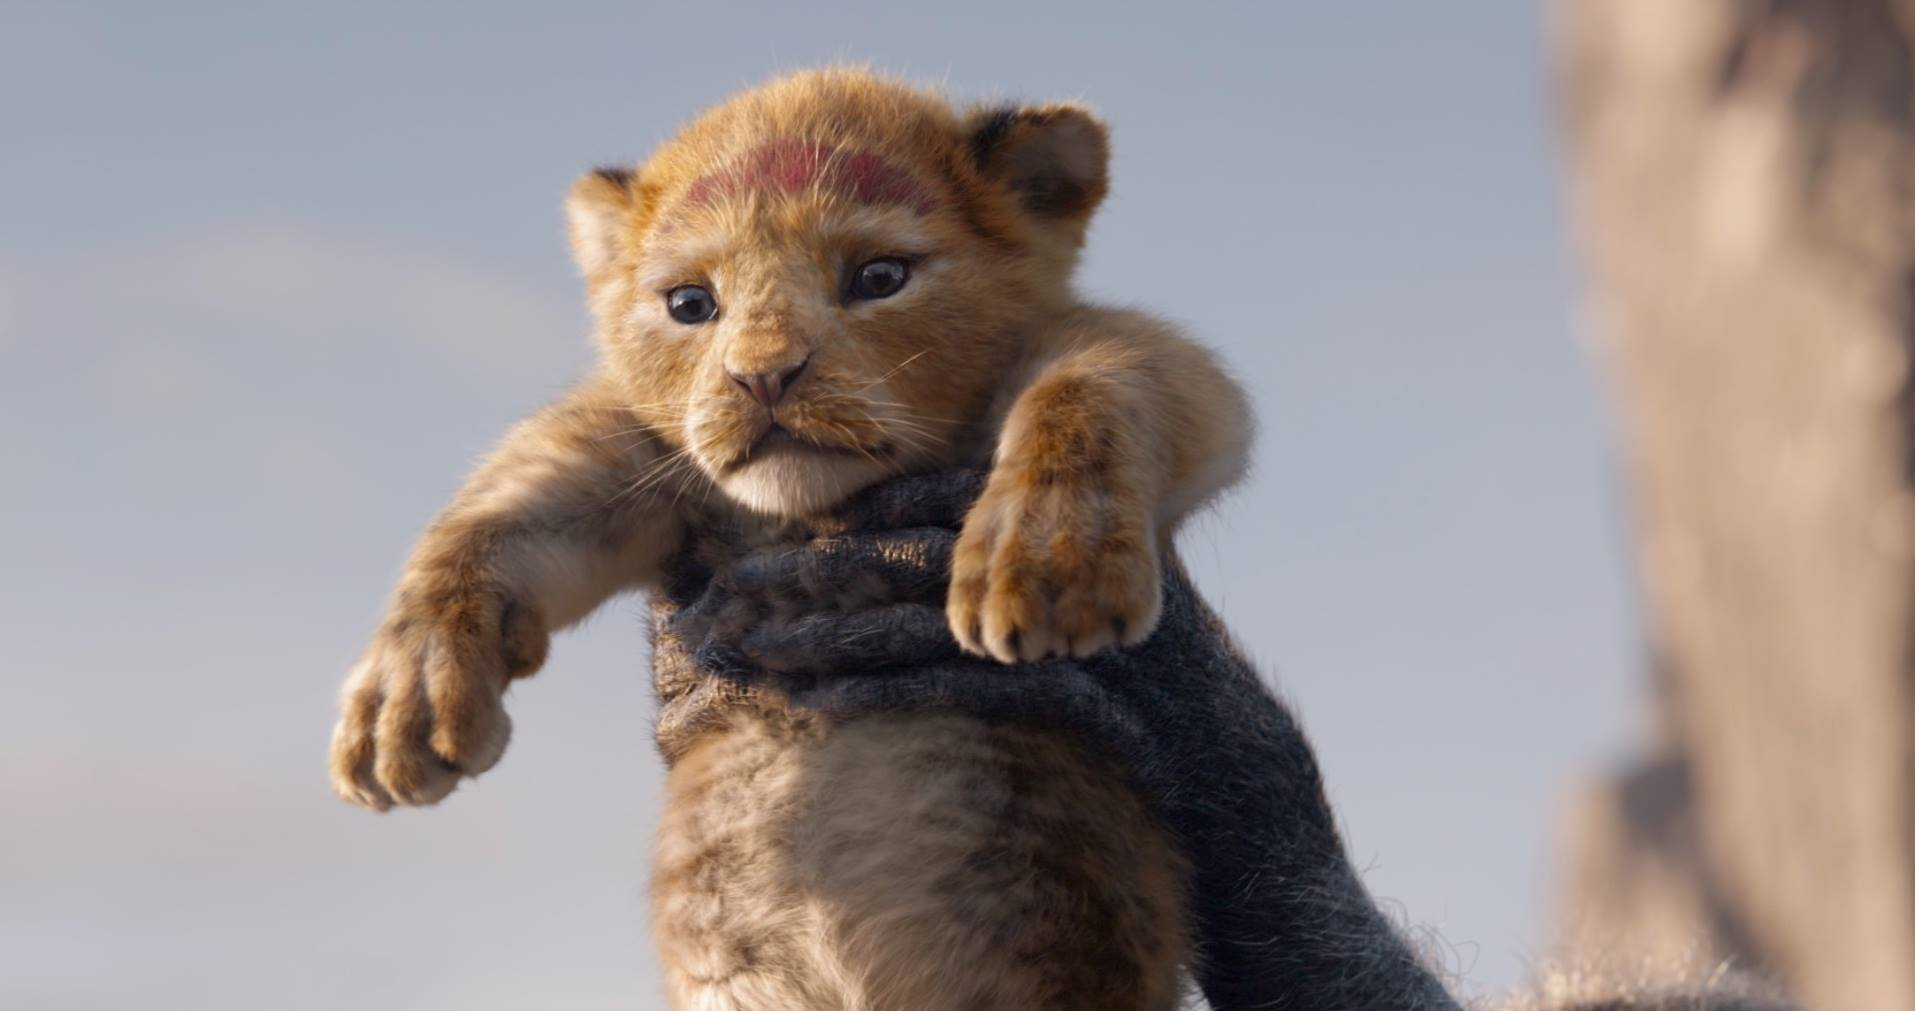 VOH-The-Lion-King-2019-1